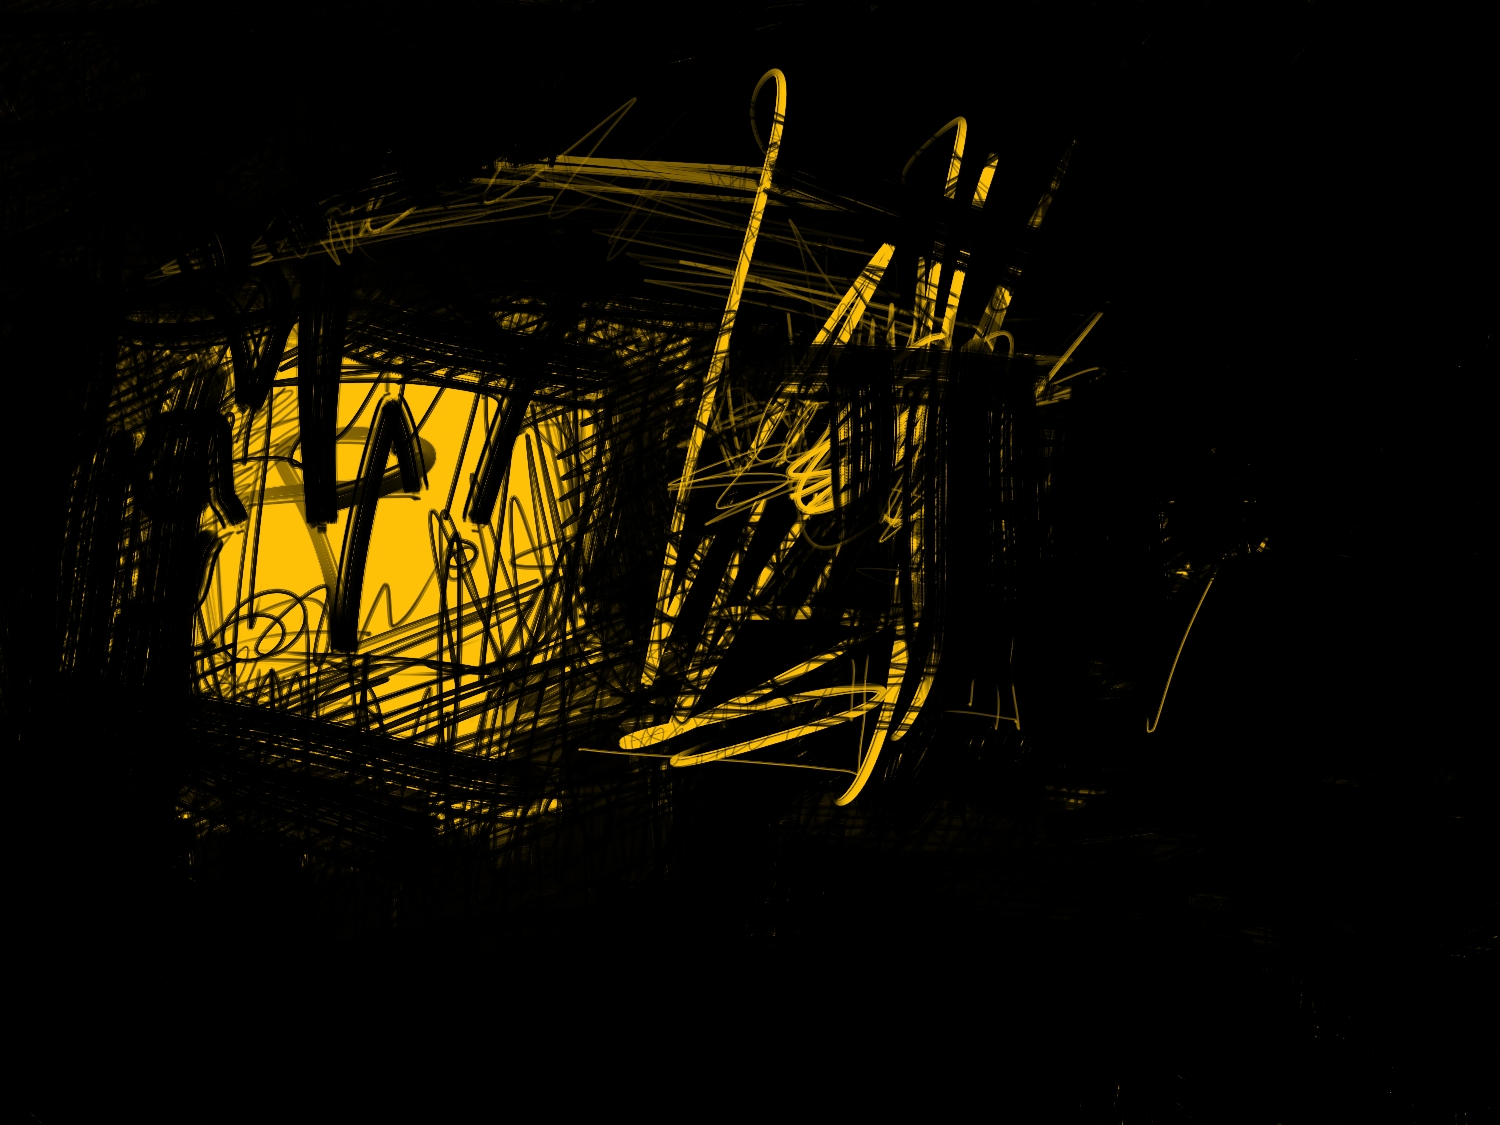 untitled digital art from the Two-Tone collection by chiarascuro